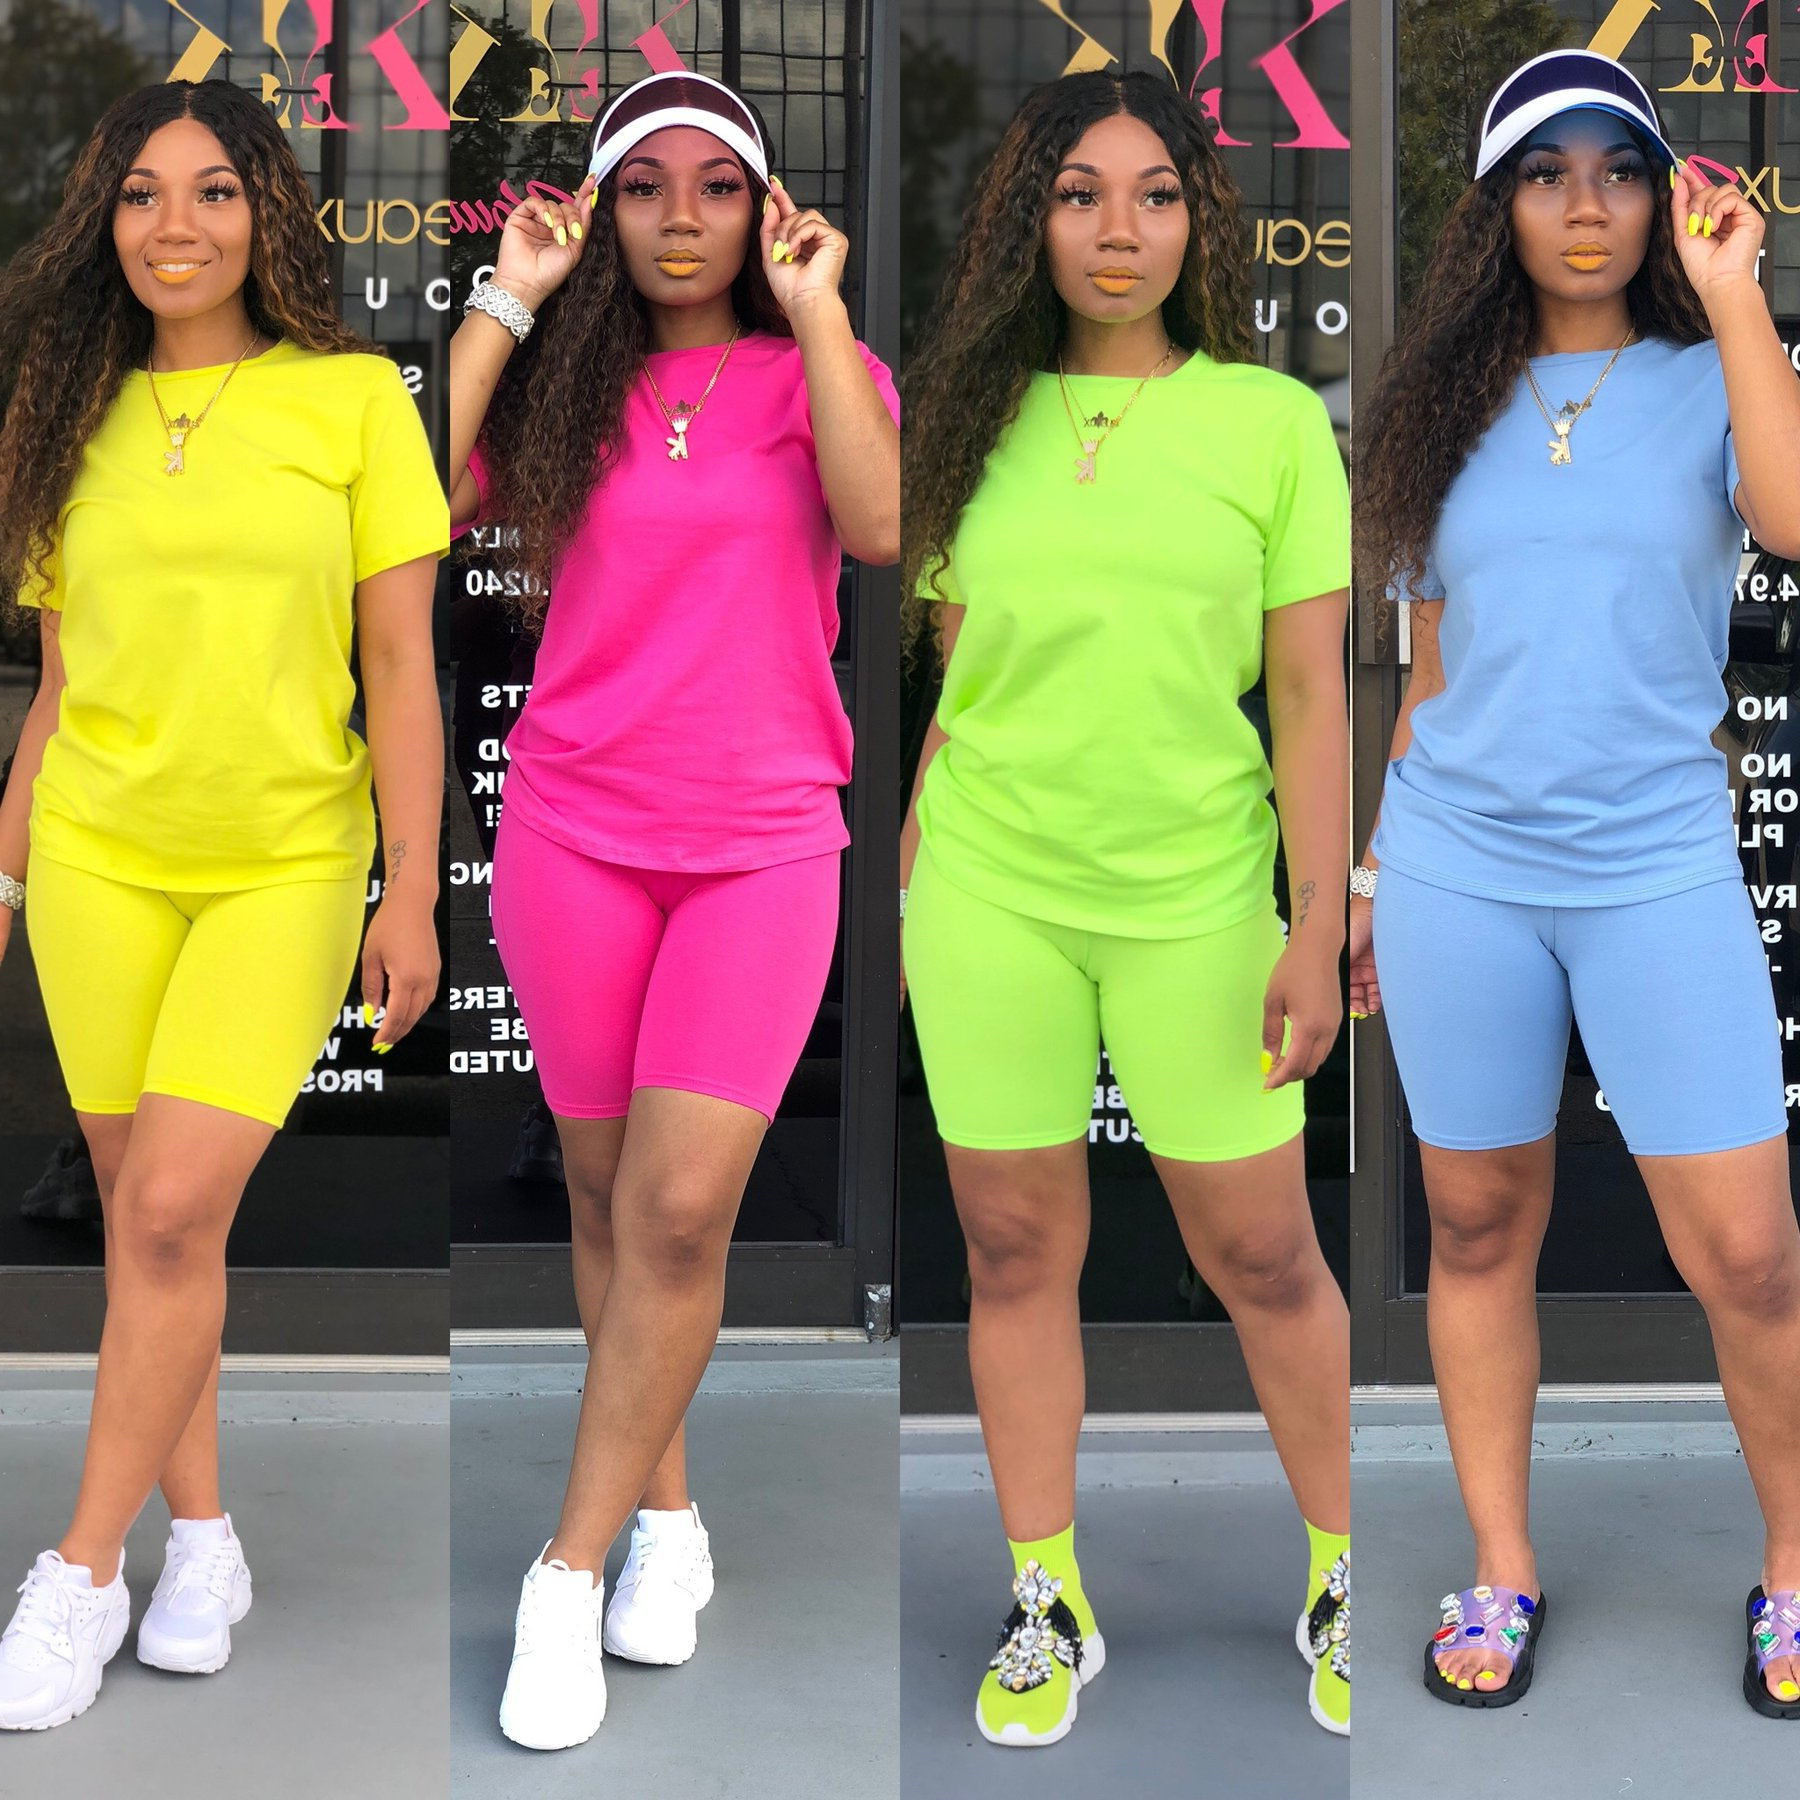 two-piece-solid-color-women's-clothing-short-sleeved-crew-neck-t-shirt-and-tight-fitting-shorts-simple-style-tracksuit-outfit